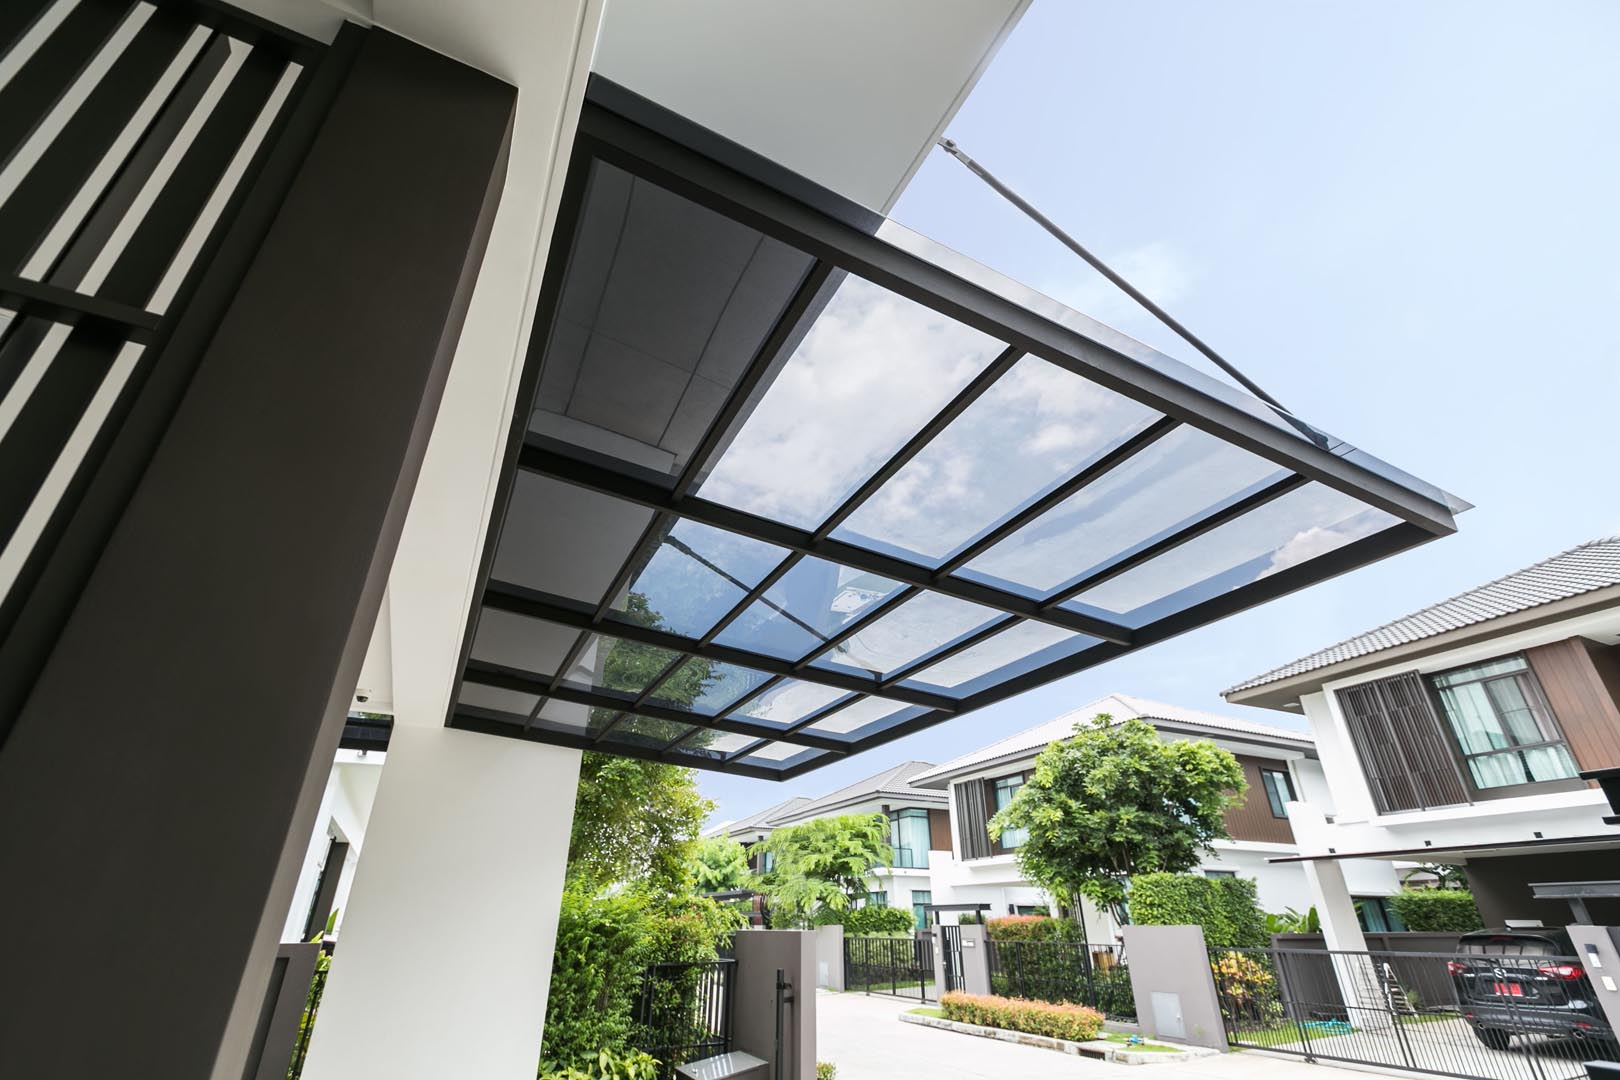 Premium heat reduction acrylic roof for parking in house modern-grey-color-laddarom-01